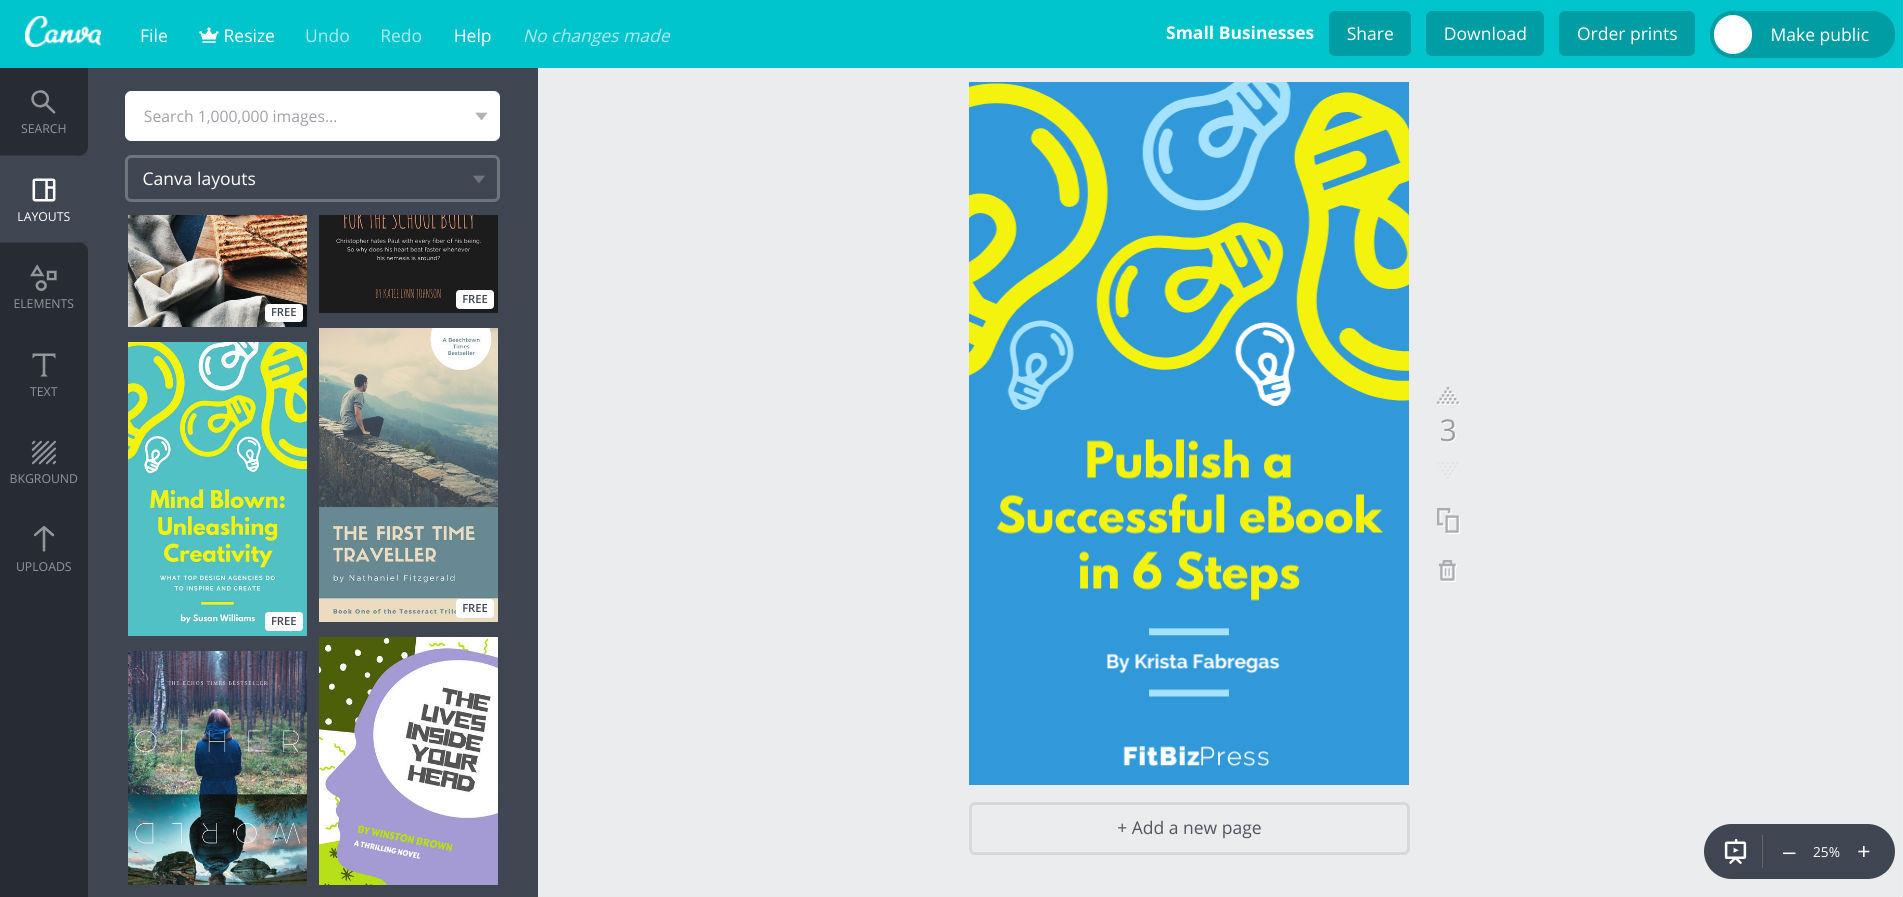 How to publish an ebook - use Canva to create ebook covers for free